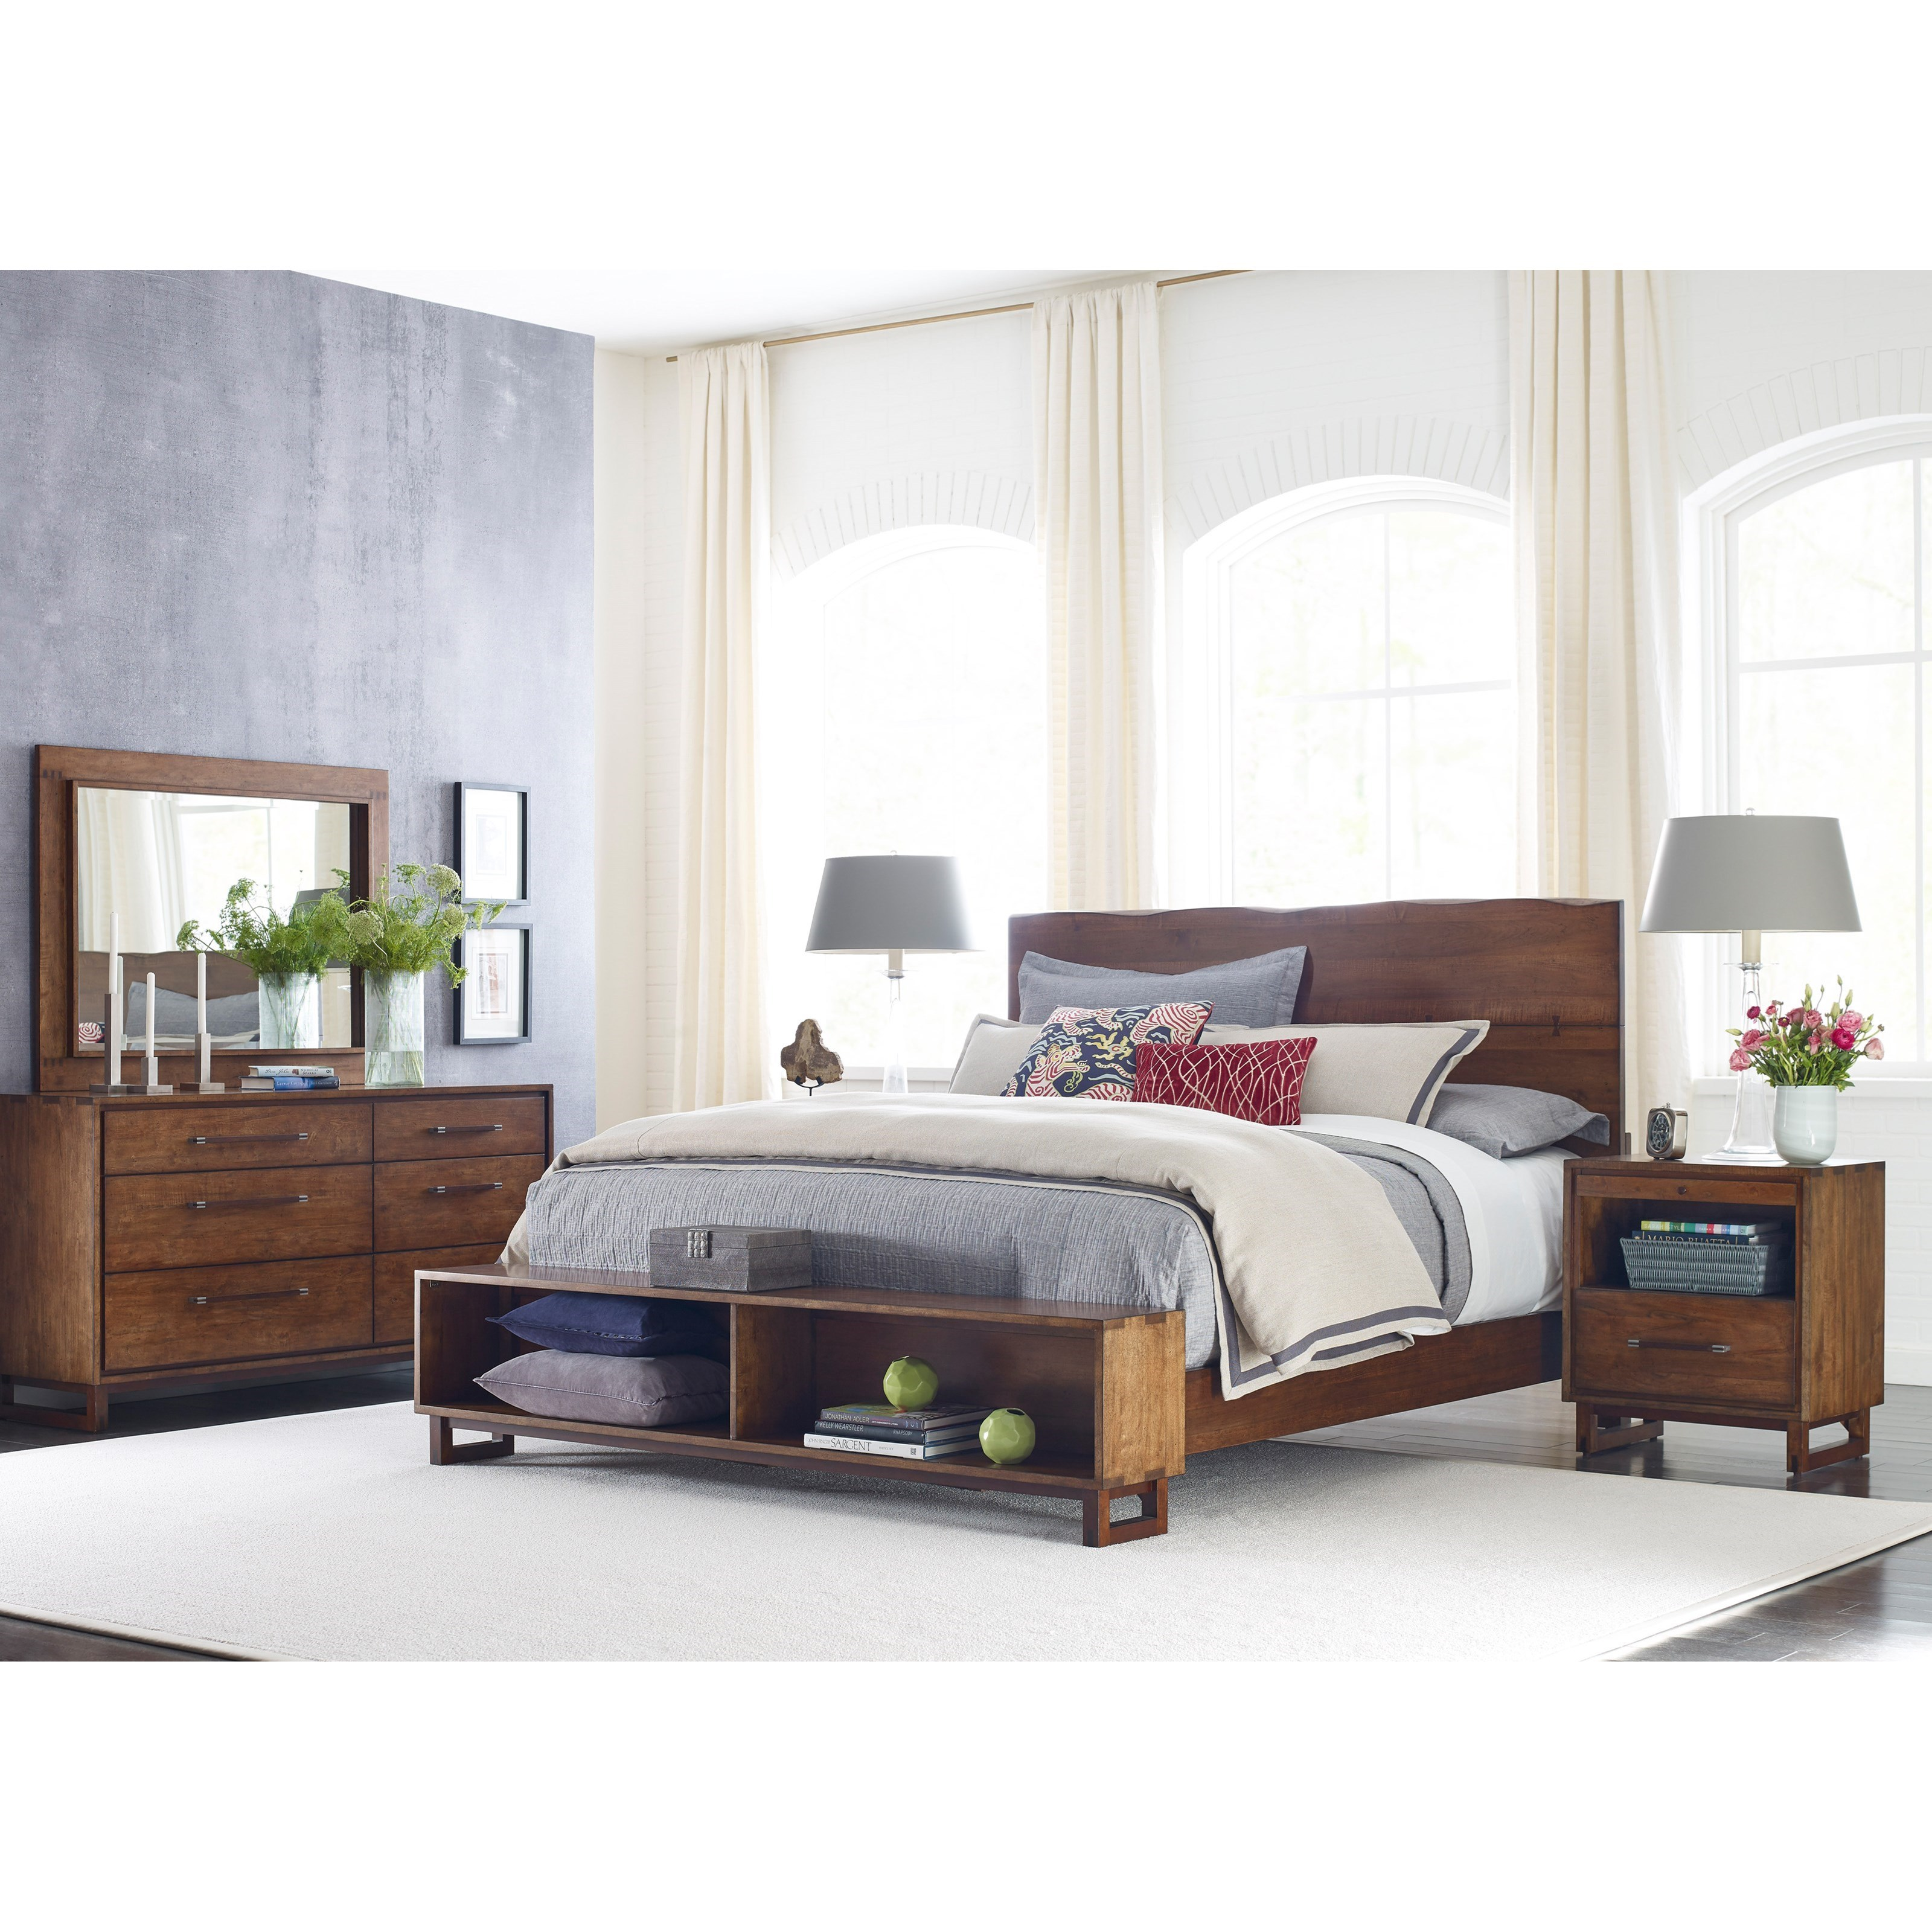 California King Bedroom Group by Kincaid Furniture